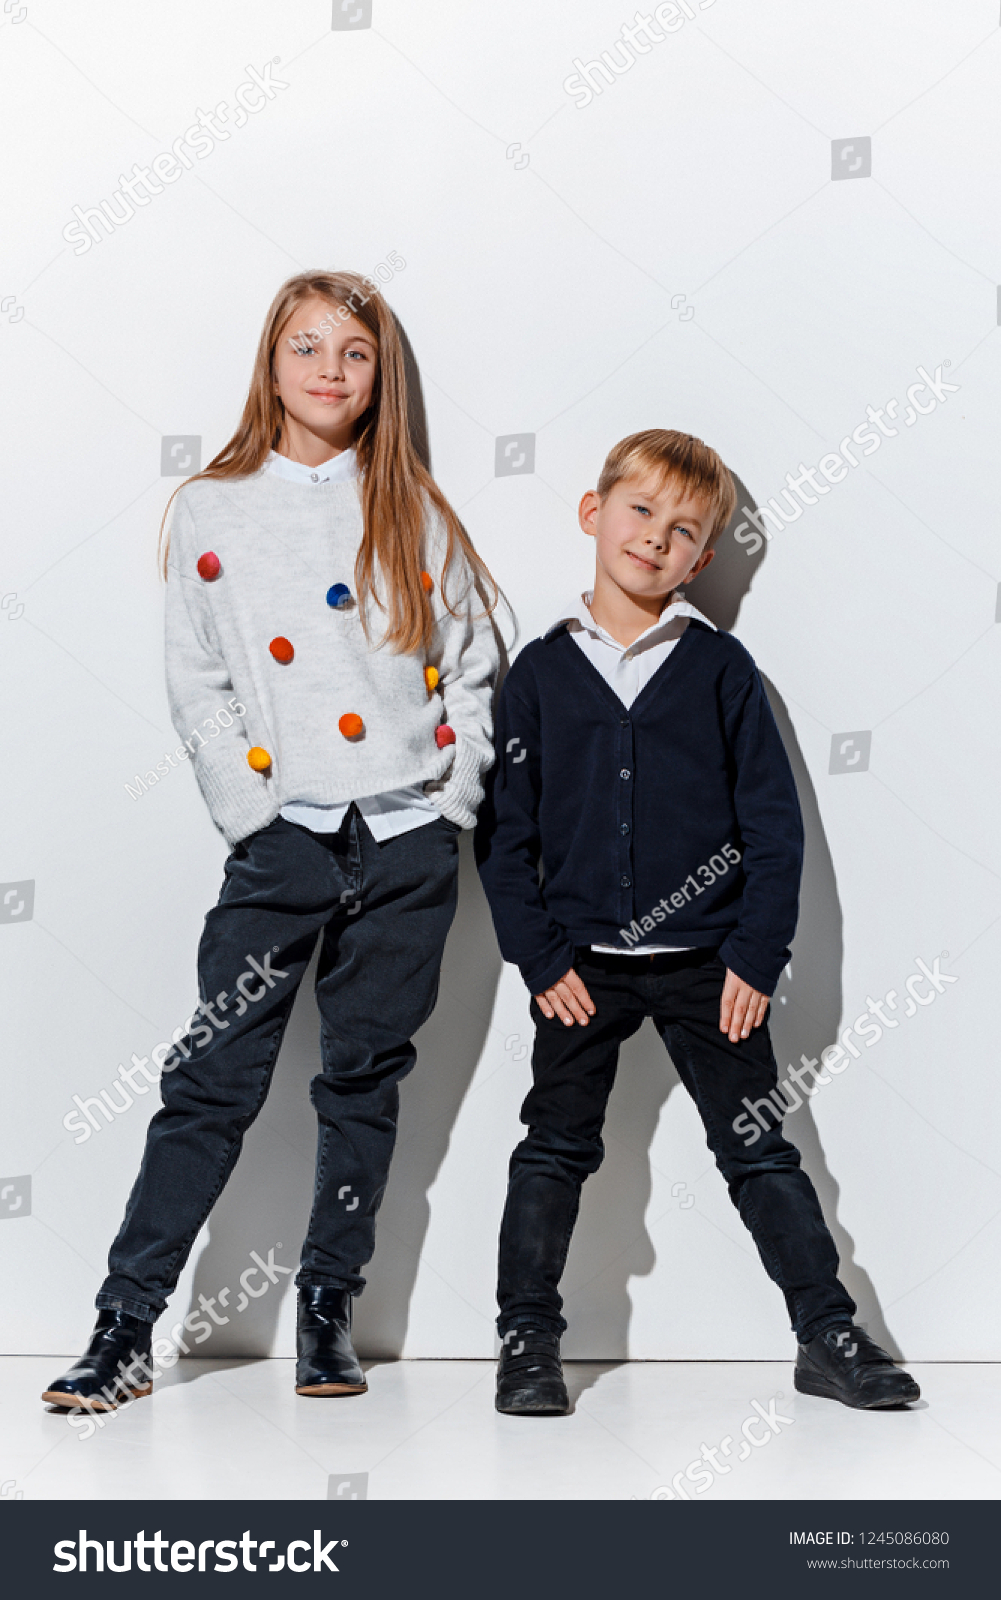 8ac37533a The portrait of cute little kids boy and girl in stylish jeans clothes  looking at camera